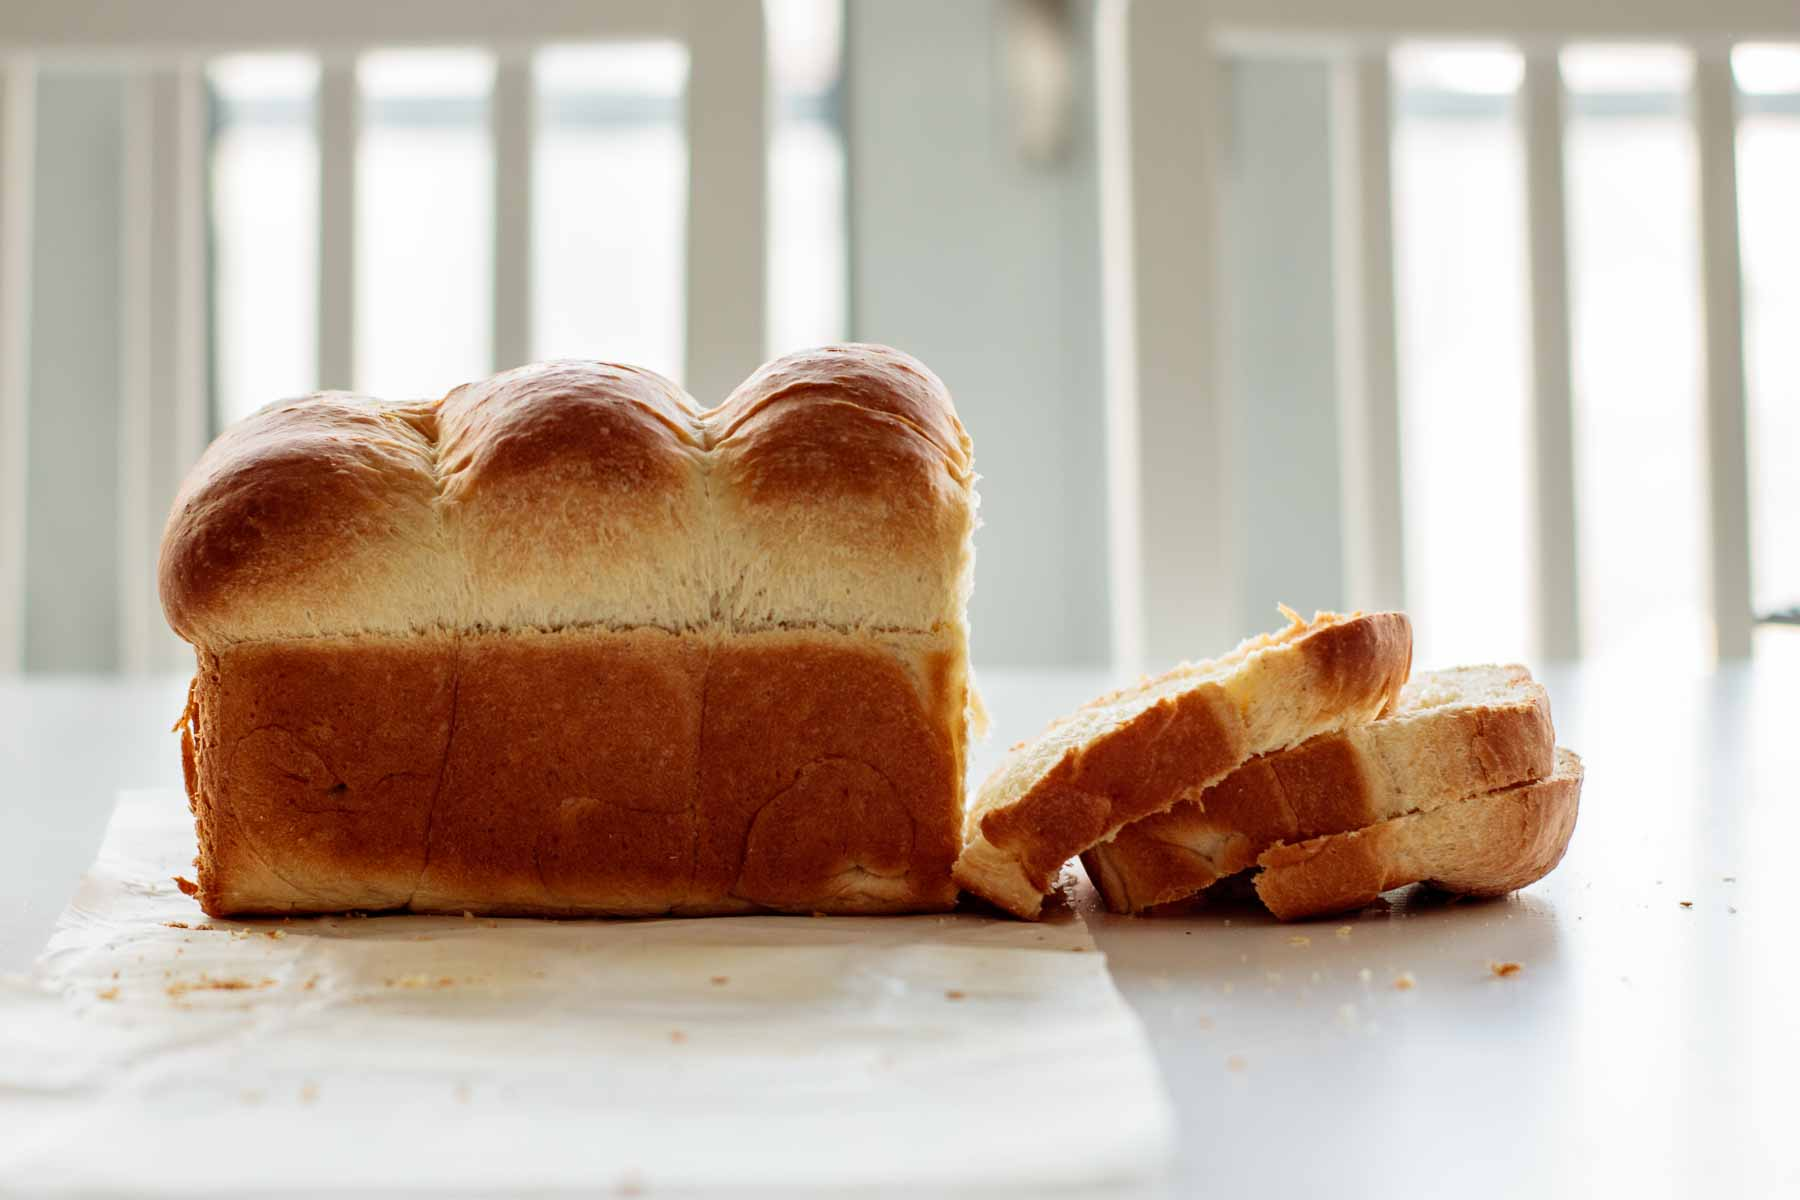 3 slices of japanese milk bread and the loaf